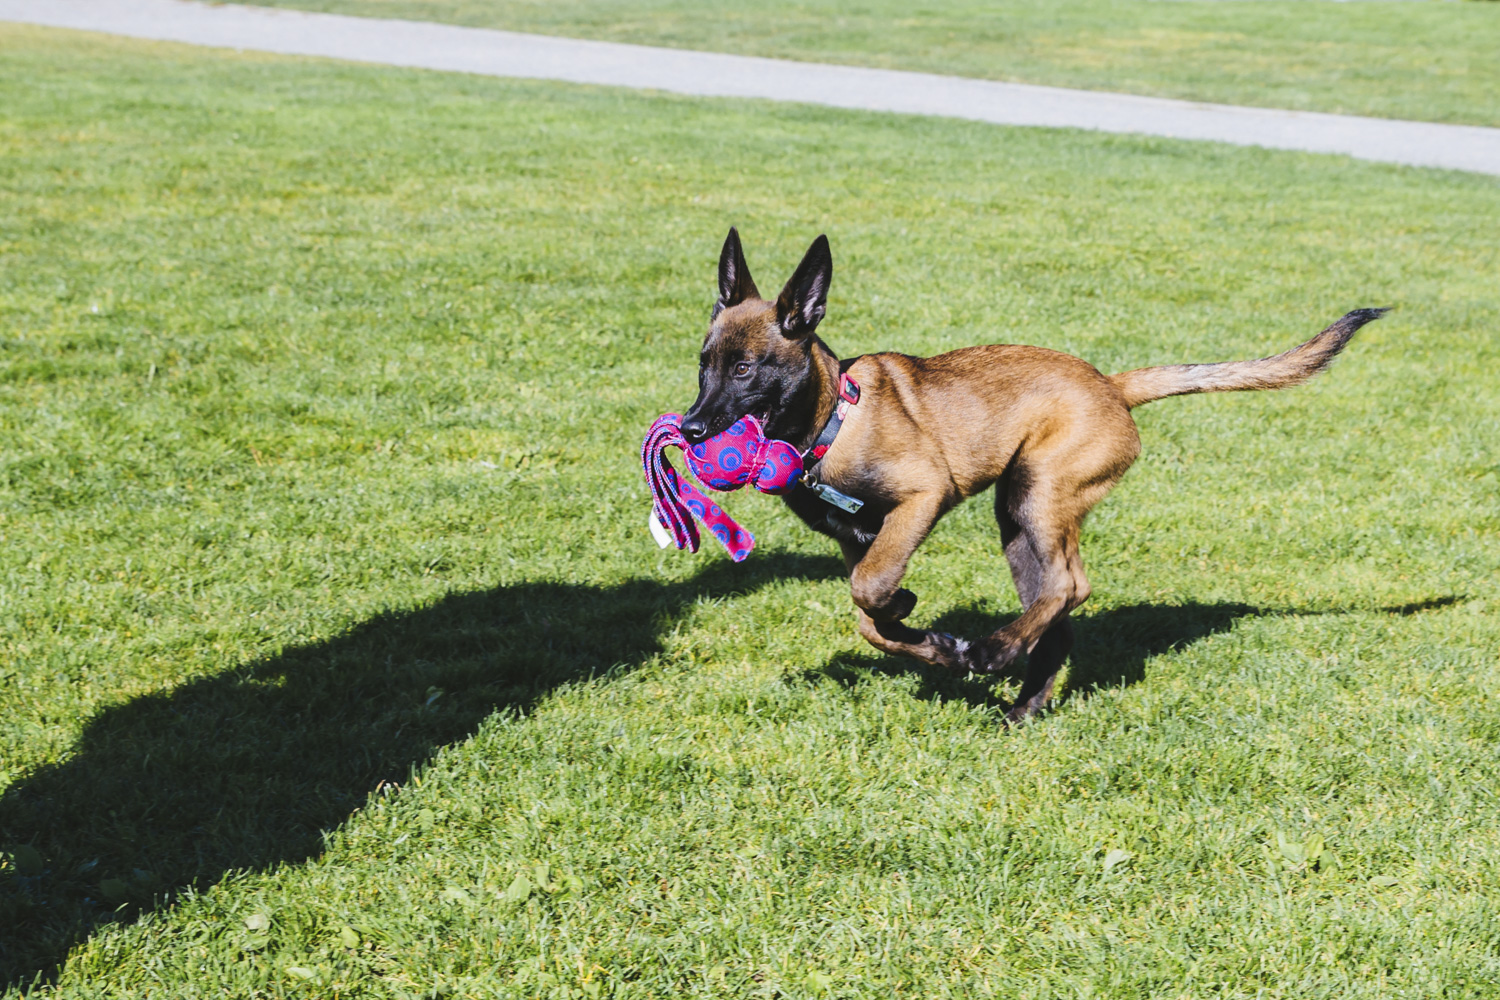 Meet Denali! Denali is a five-month-old Belgian Malinois! She is originally from Toronto, but is now living it up in Seattle! How 'bout that, eh? Sorry - I couldn't resist. Denali likes baths, playing tug of war with her Kong Wubba, and hanging out in Jefferson Park. She dislikes being mistaken for a boy and seeing the Mariners miss post season. The Seattle RUFFined Spotlight is a weekly profile of local pets living and loving life in the PNW. If you or someone you know has a pet you'd like featured, email us at hello@seattlerefined.com or tag #SeattleRUFFined and your furbaby could be the next spotlighted! (Image: Sunita Martini / Seattle Refined).